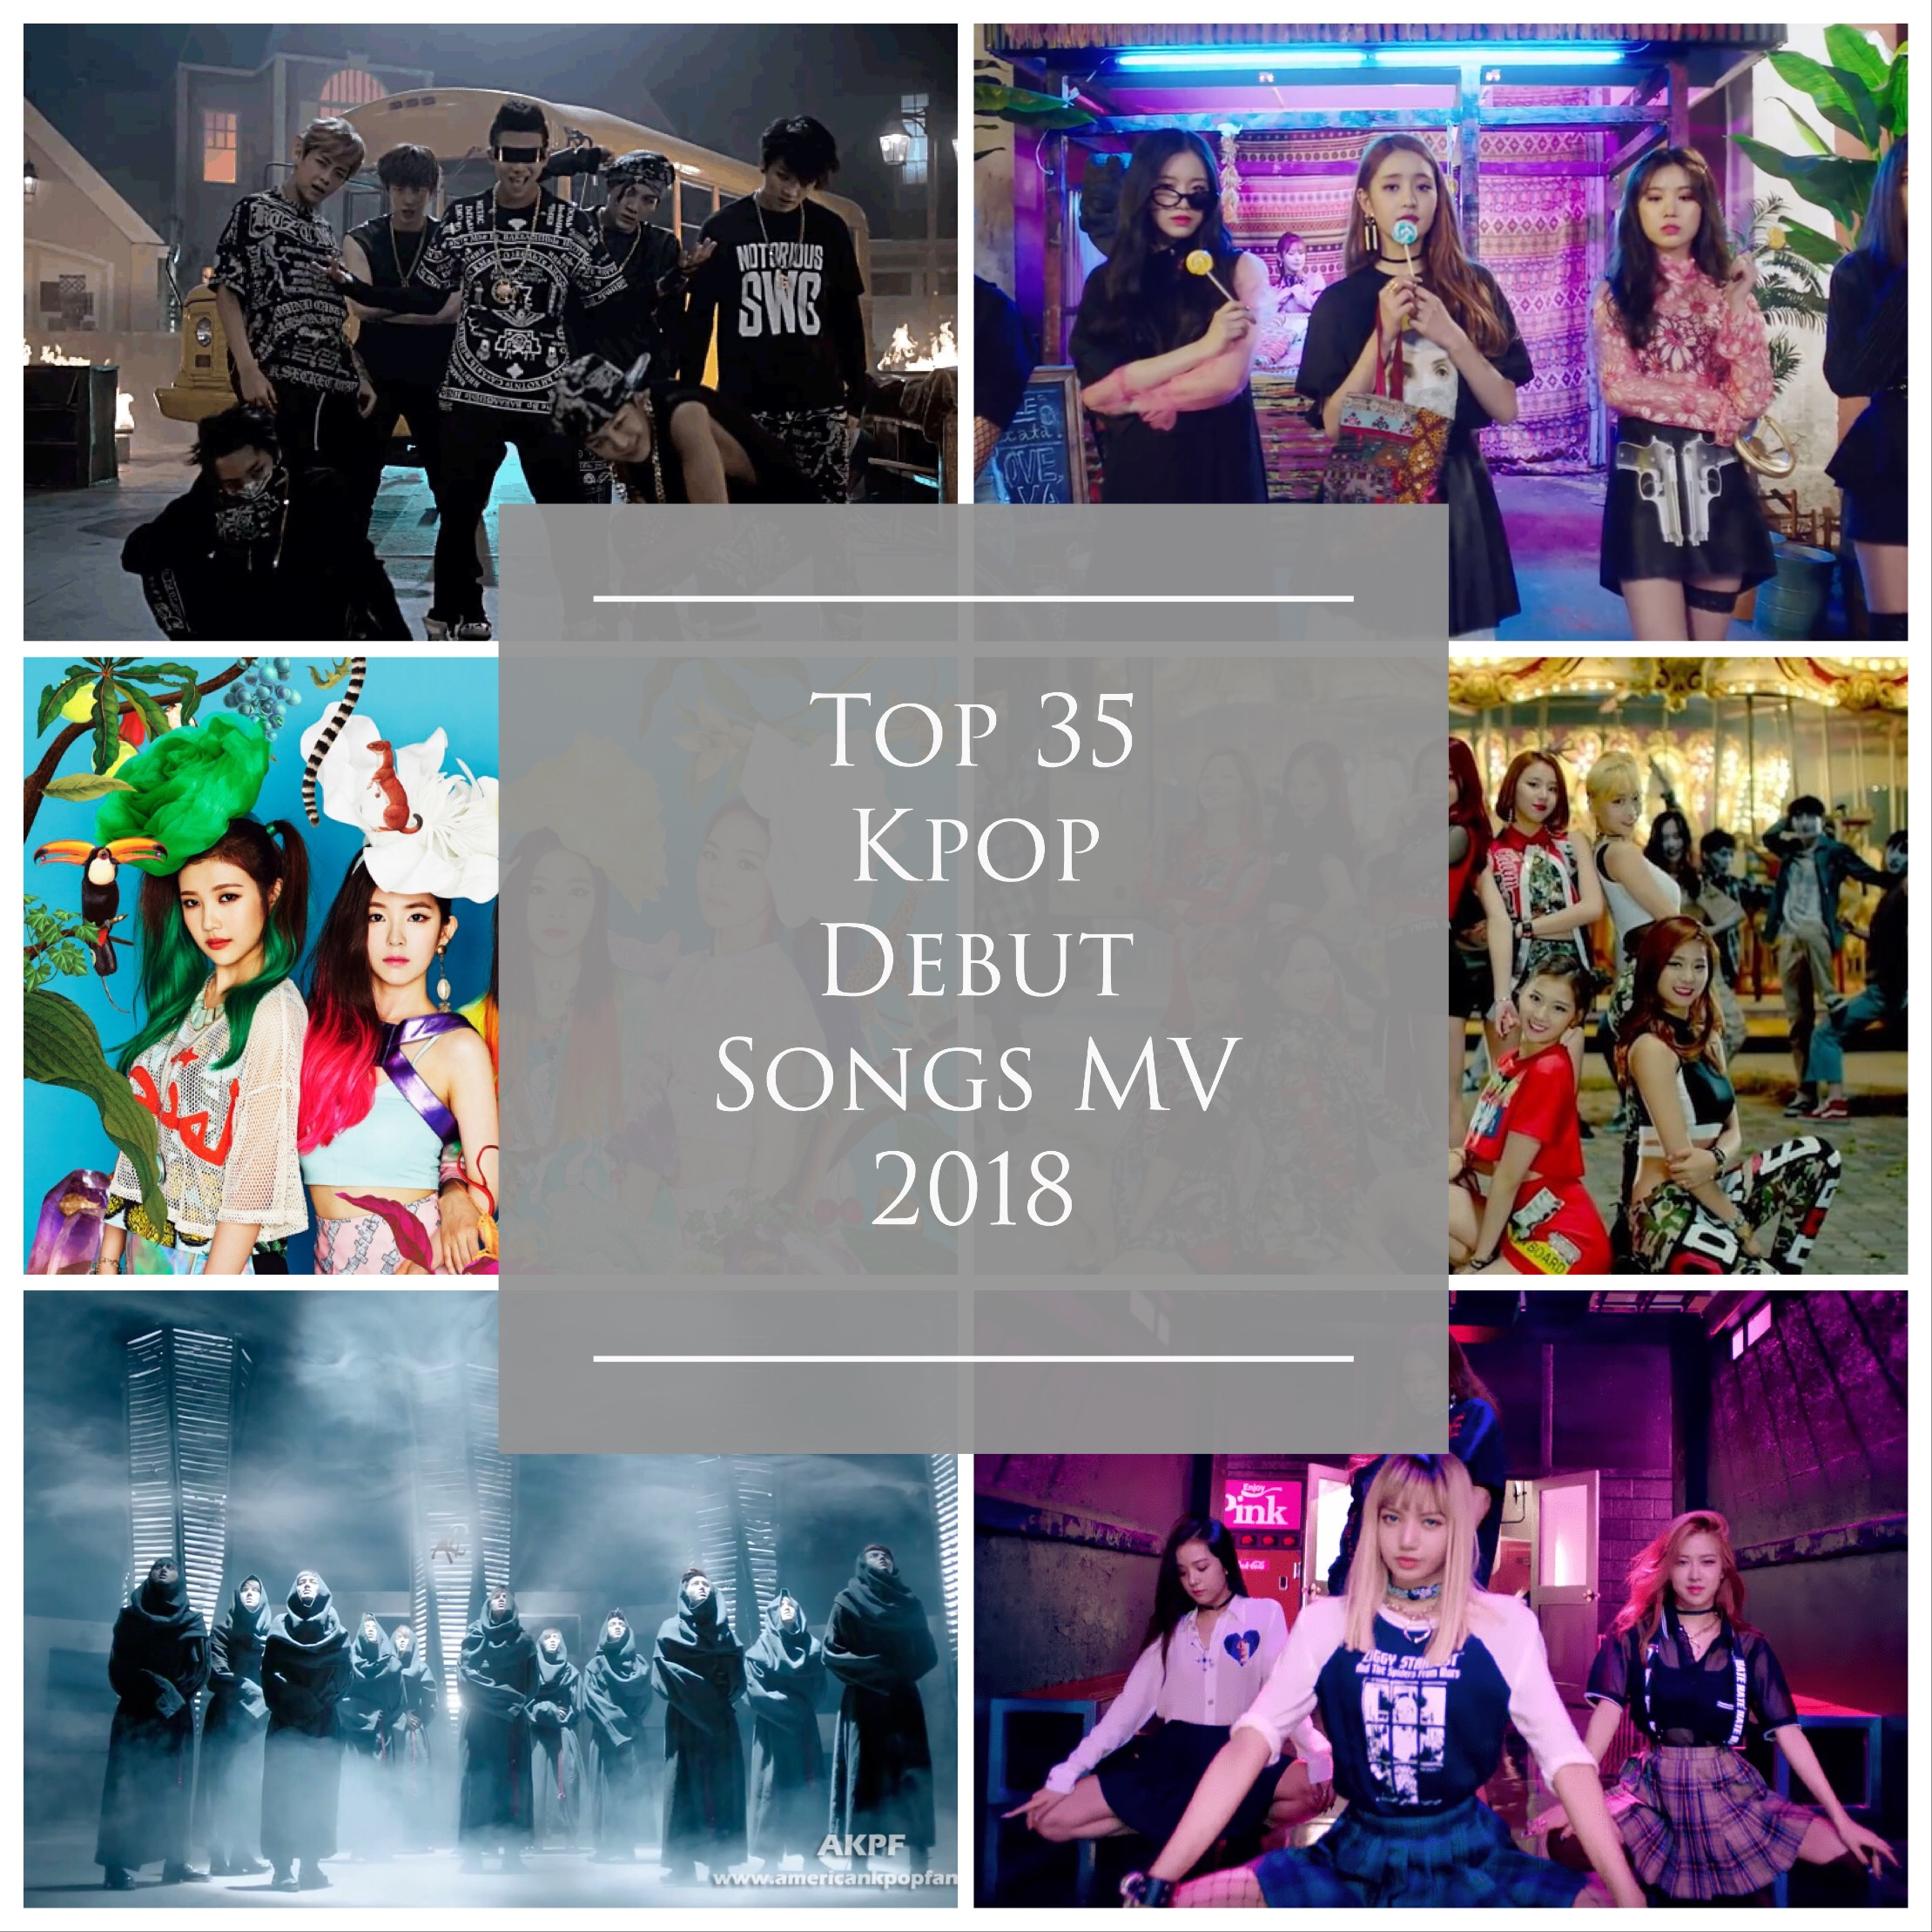 Top 35 Kpop Debut Songs MV 2018 - Mad Meaning